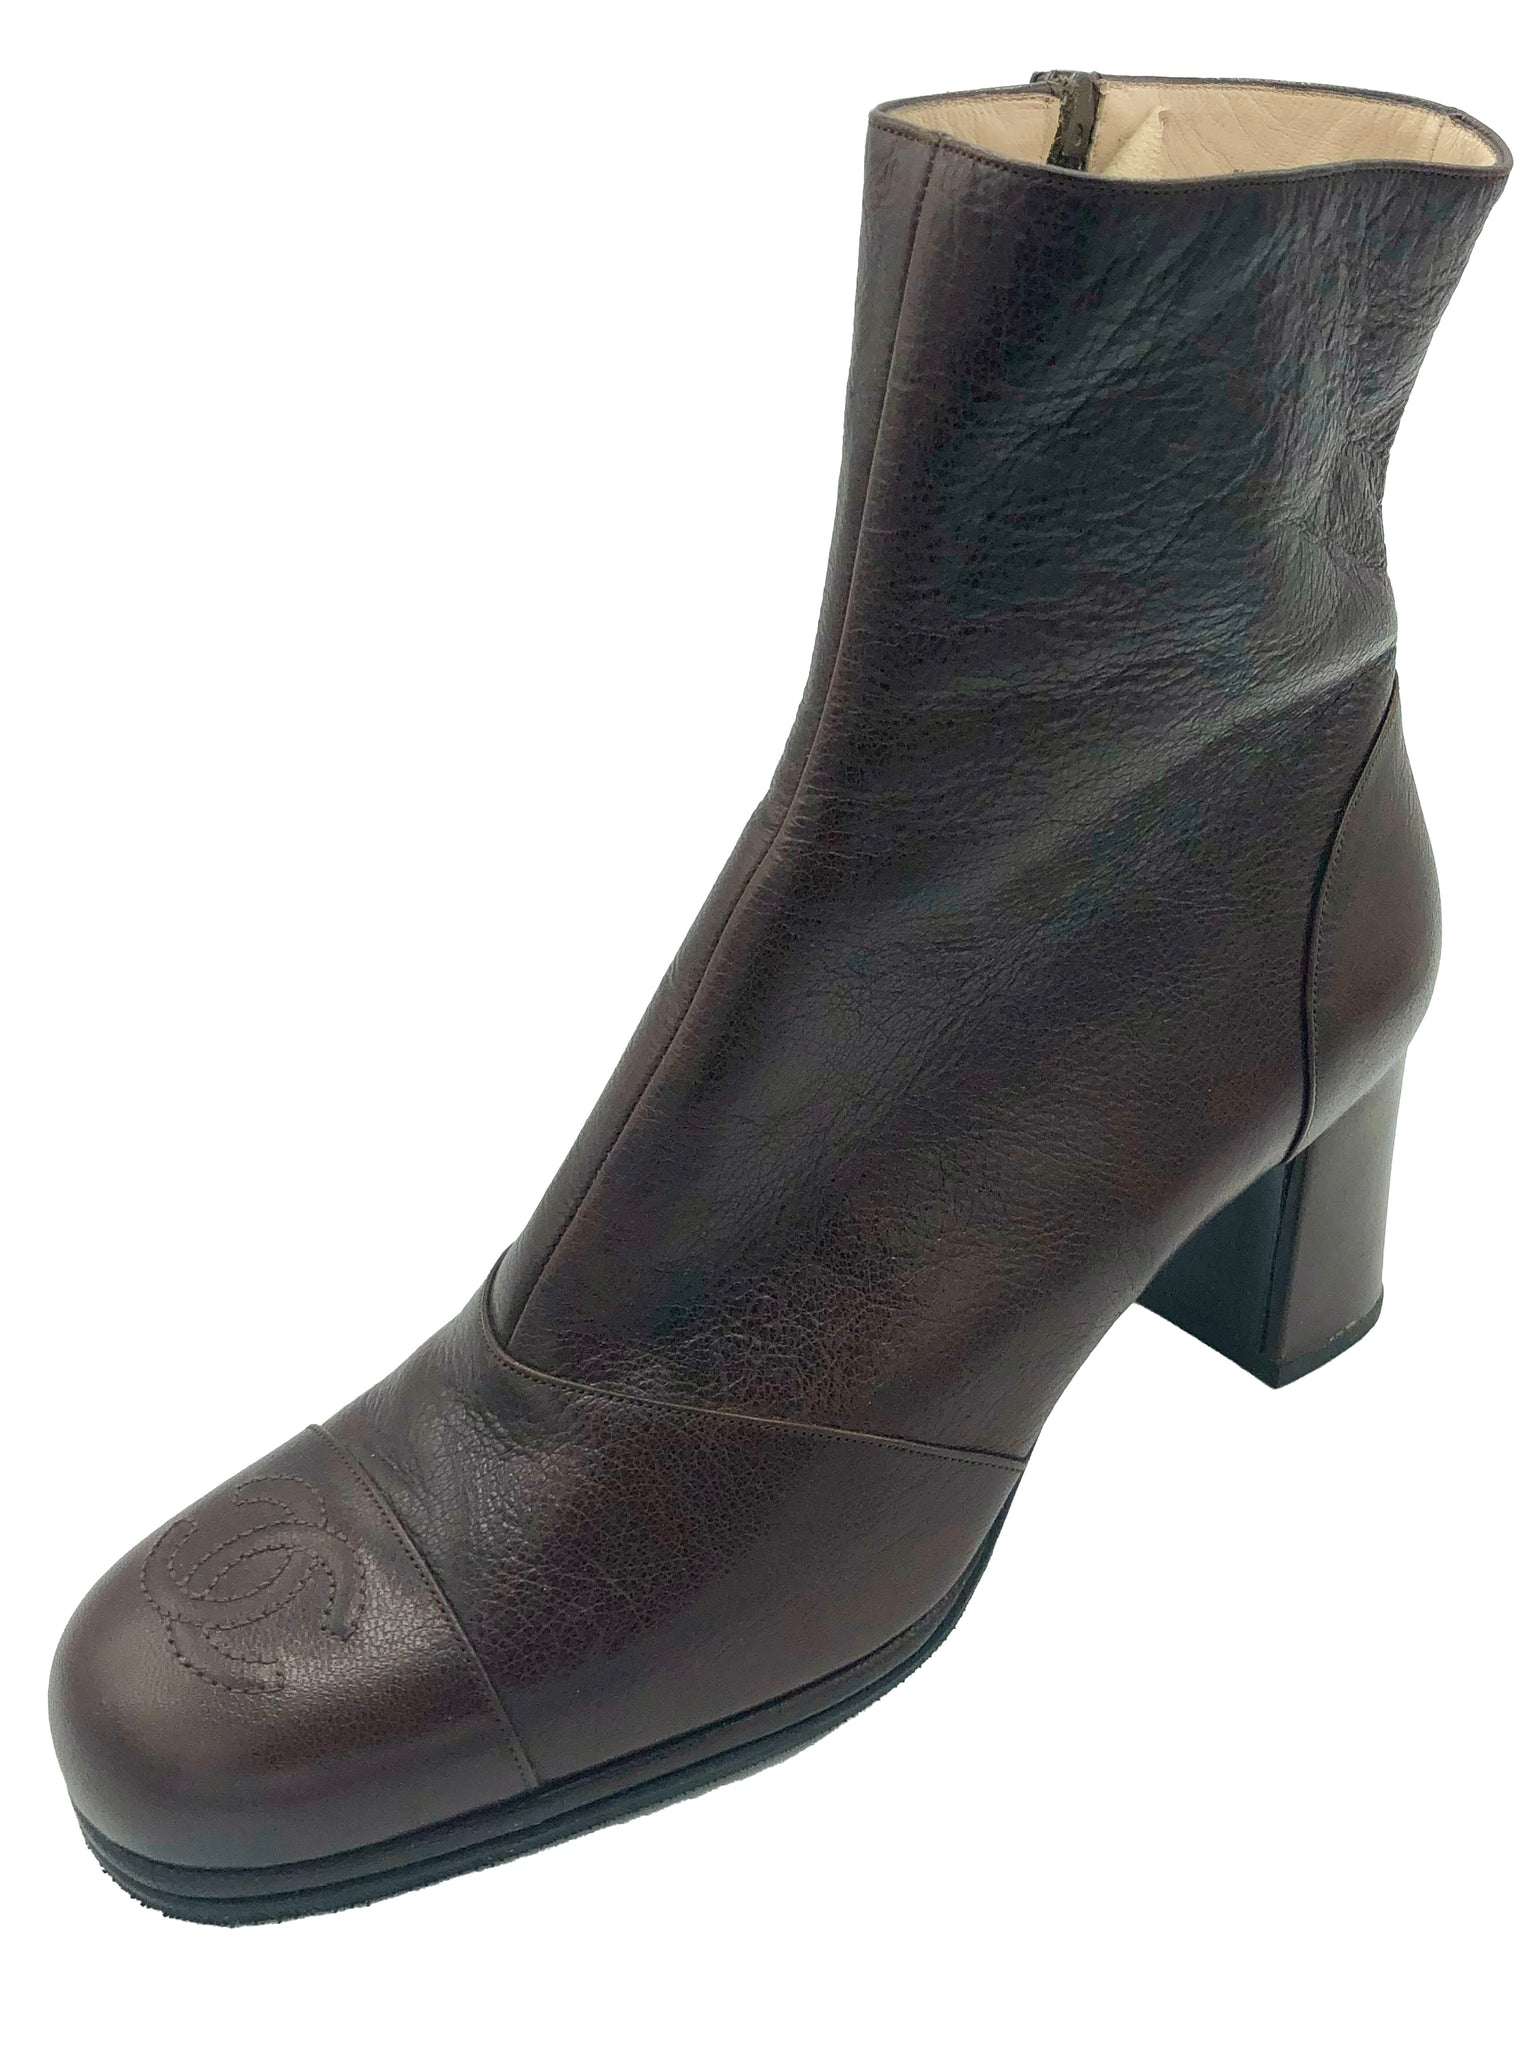 Chanel Early 2000s Chocolate Brown Ankle Boots with CC Logo SINGLE 2 of 4